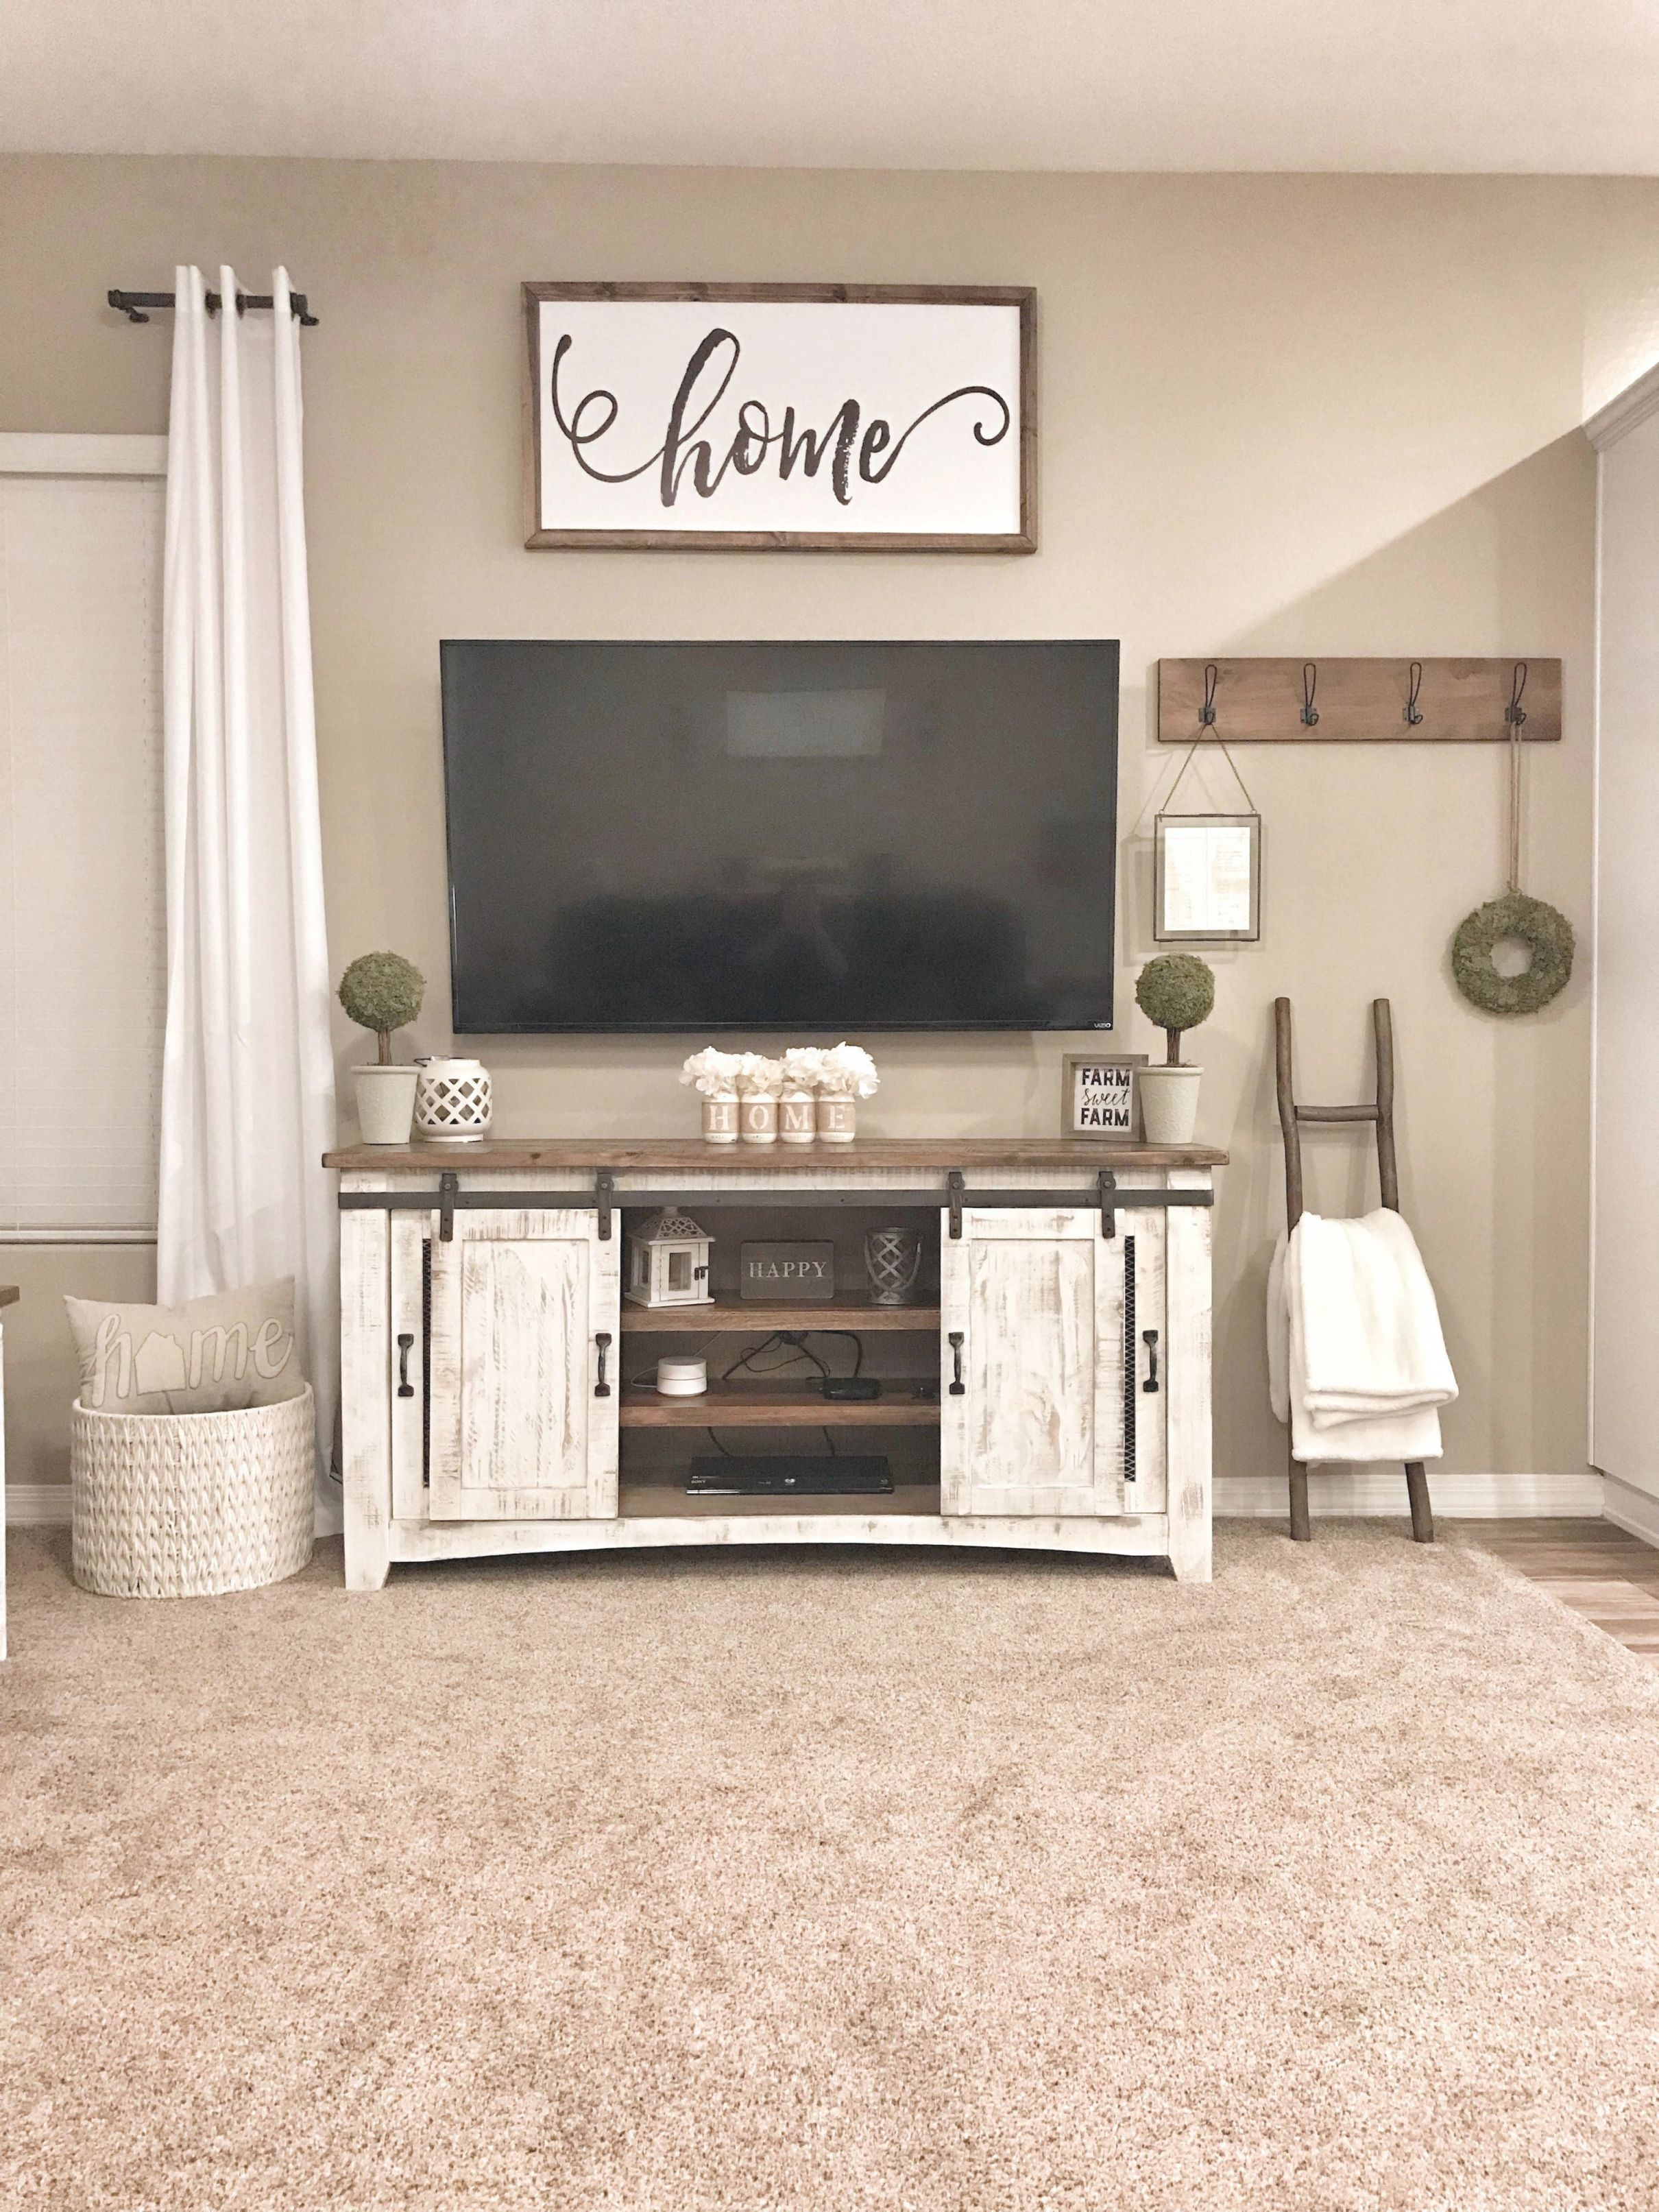 Farmhouse Tv Stand Decor #diyhomedecorideasorganizations | Diy Home in Elegant Modern Tv Stand Ideas For Living Room Ideas 2019